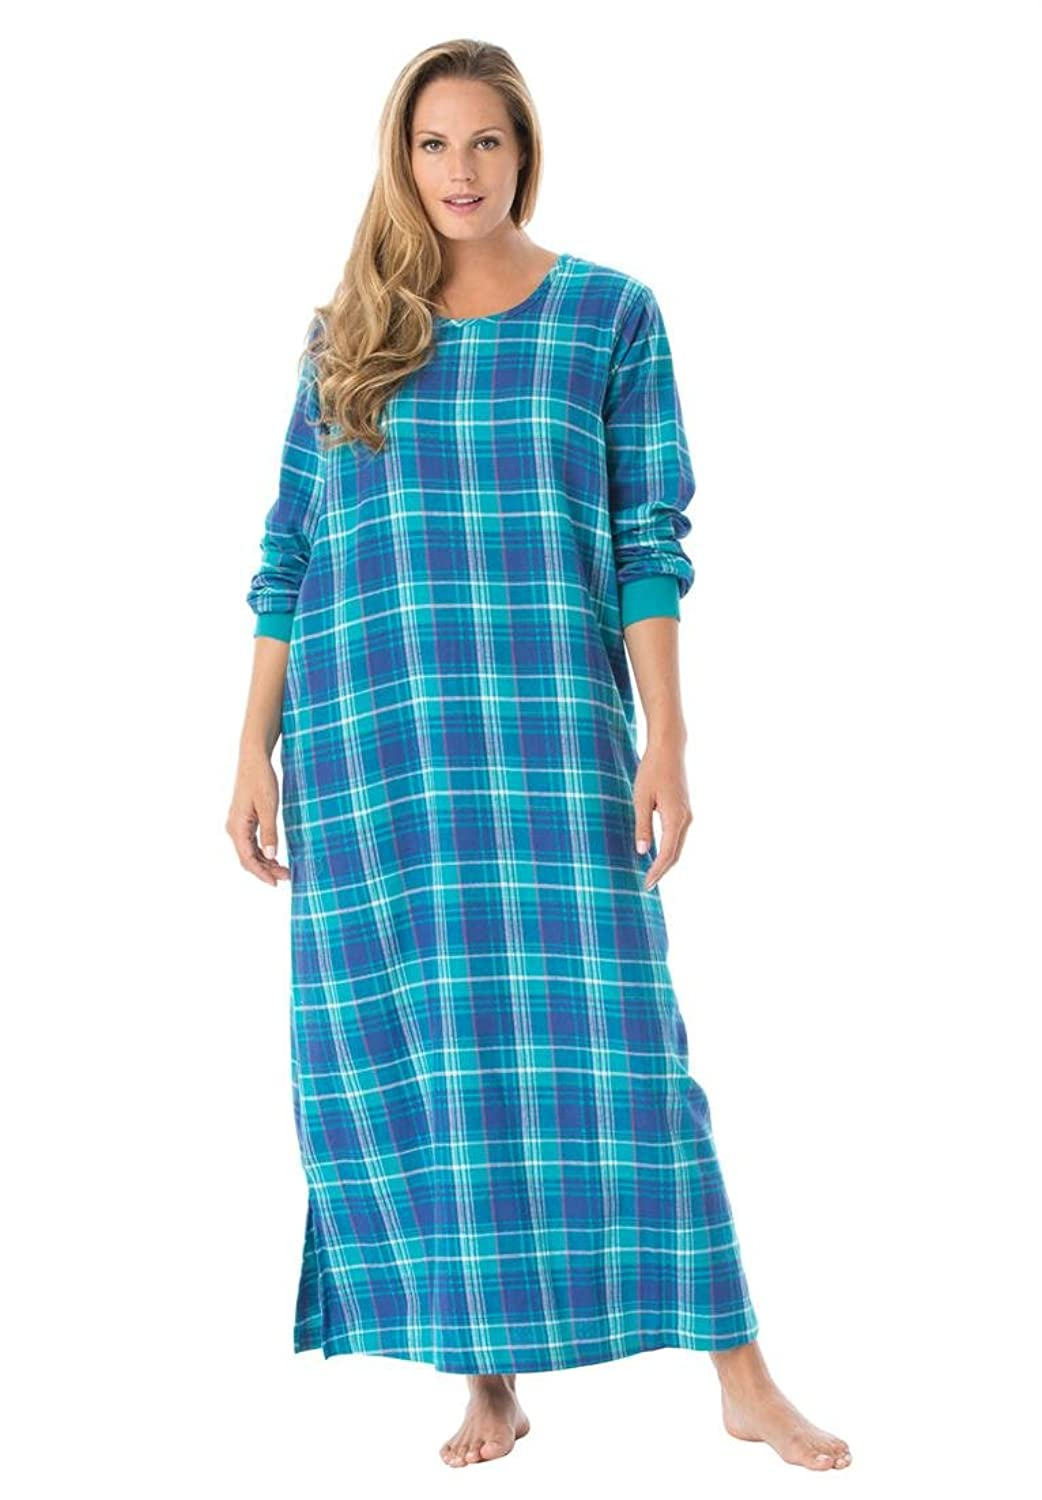 Dreams & Co. Women's Plus Size Soft Cotton Flannel Lounger